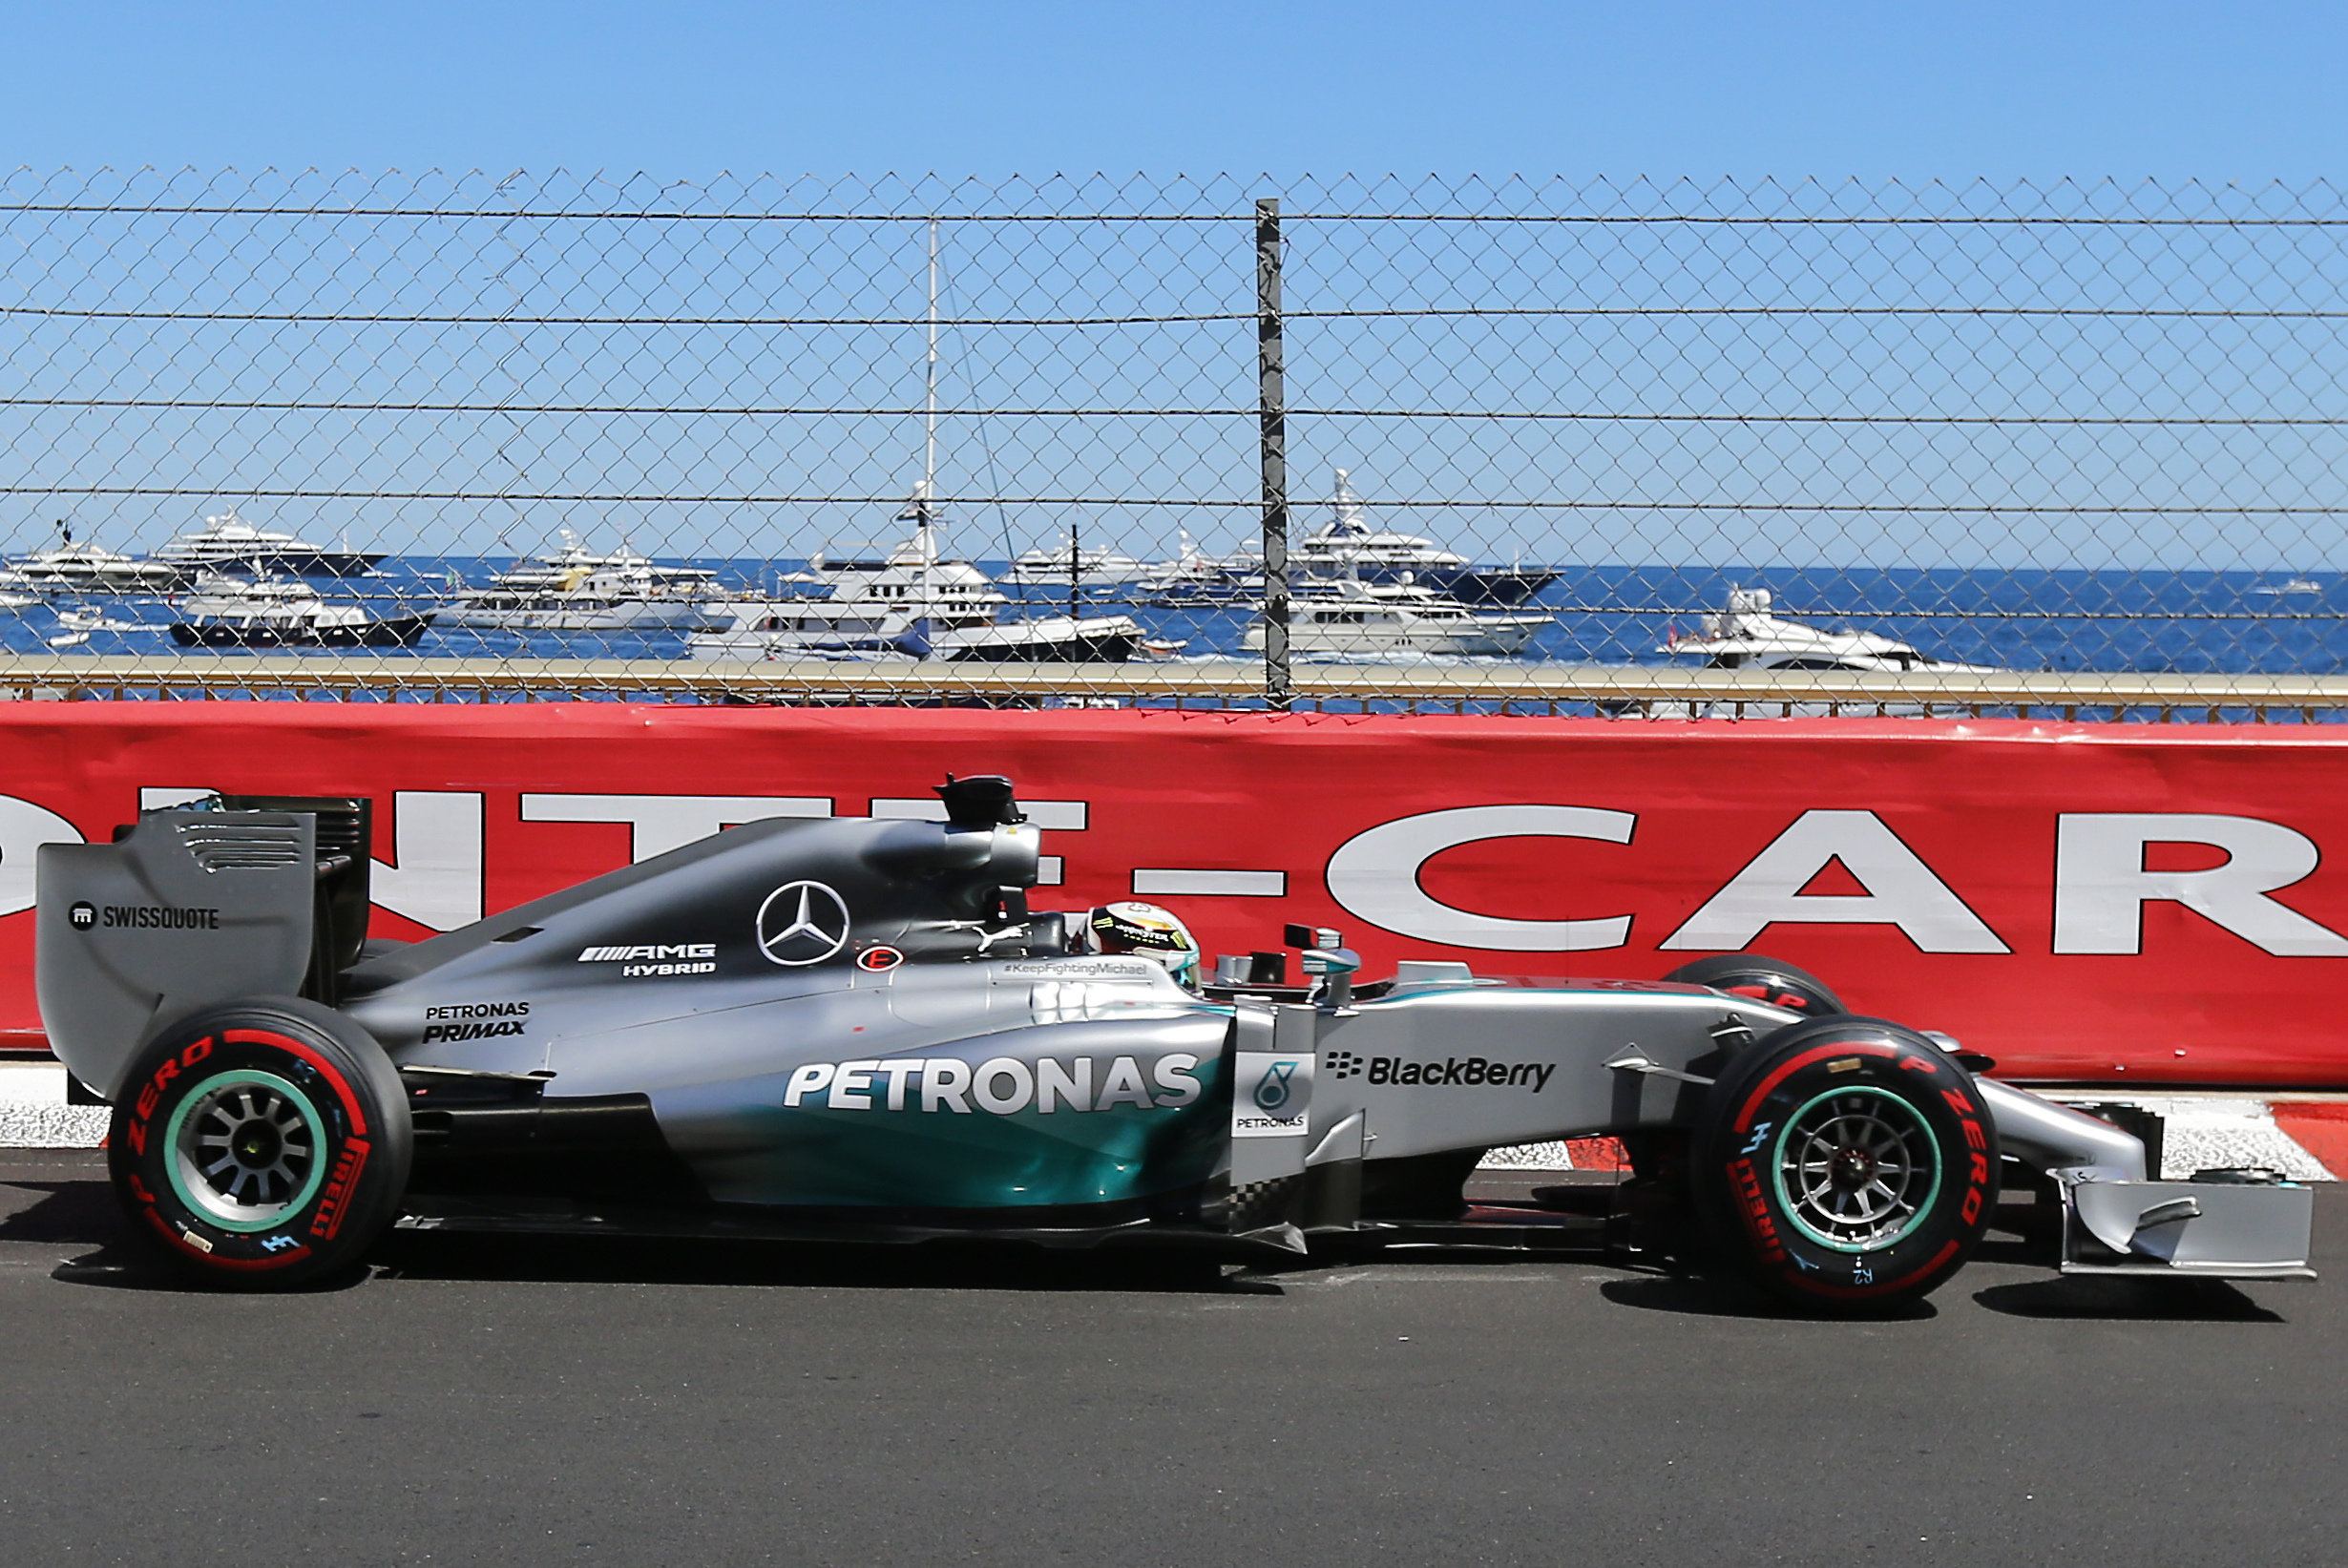 canadian f1 grand prix 2014 start time lineup tv schedule and more bleacher report. Black Bedroom Furniture Sets. Home Design Ideas